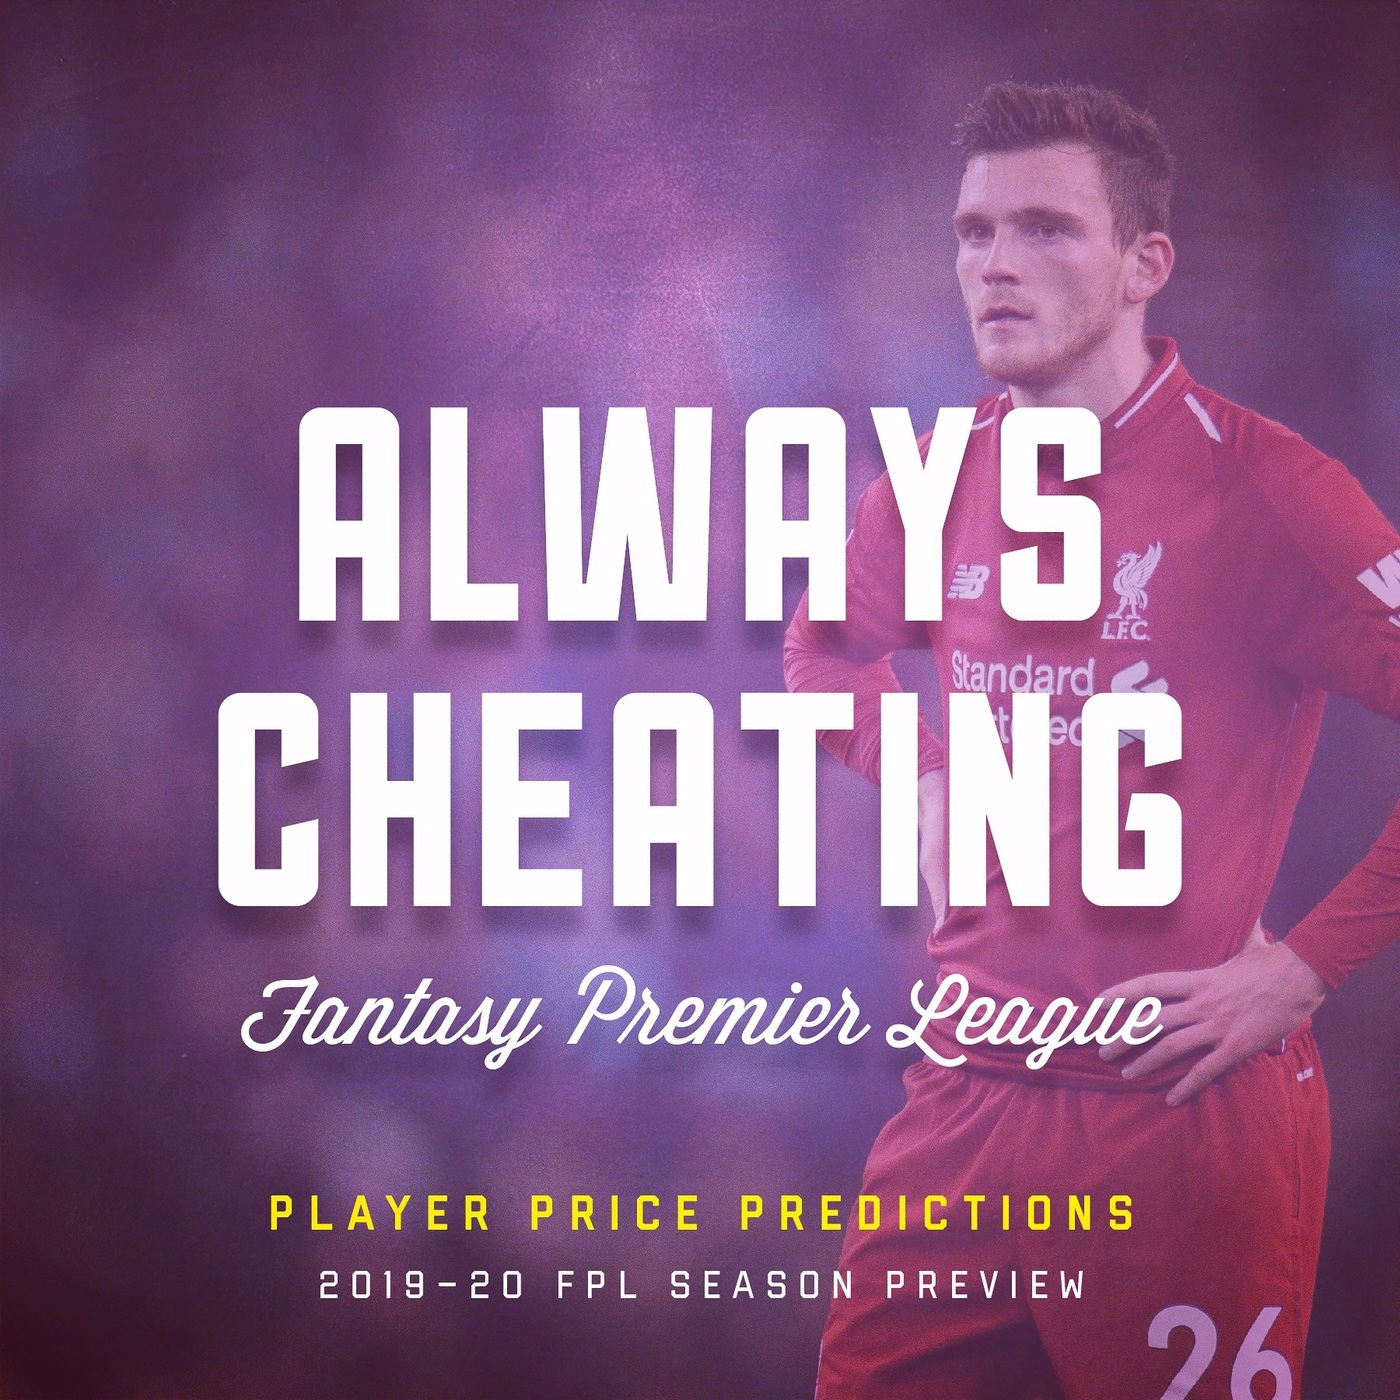 Ep 174: Player Price Predictions (2019-20 Preview)